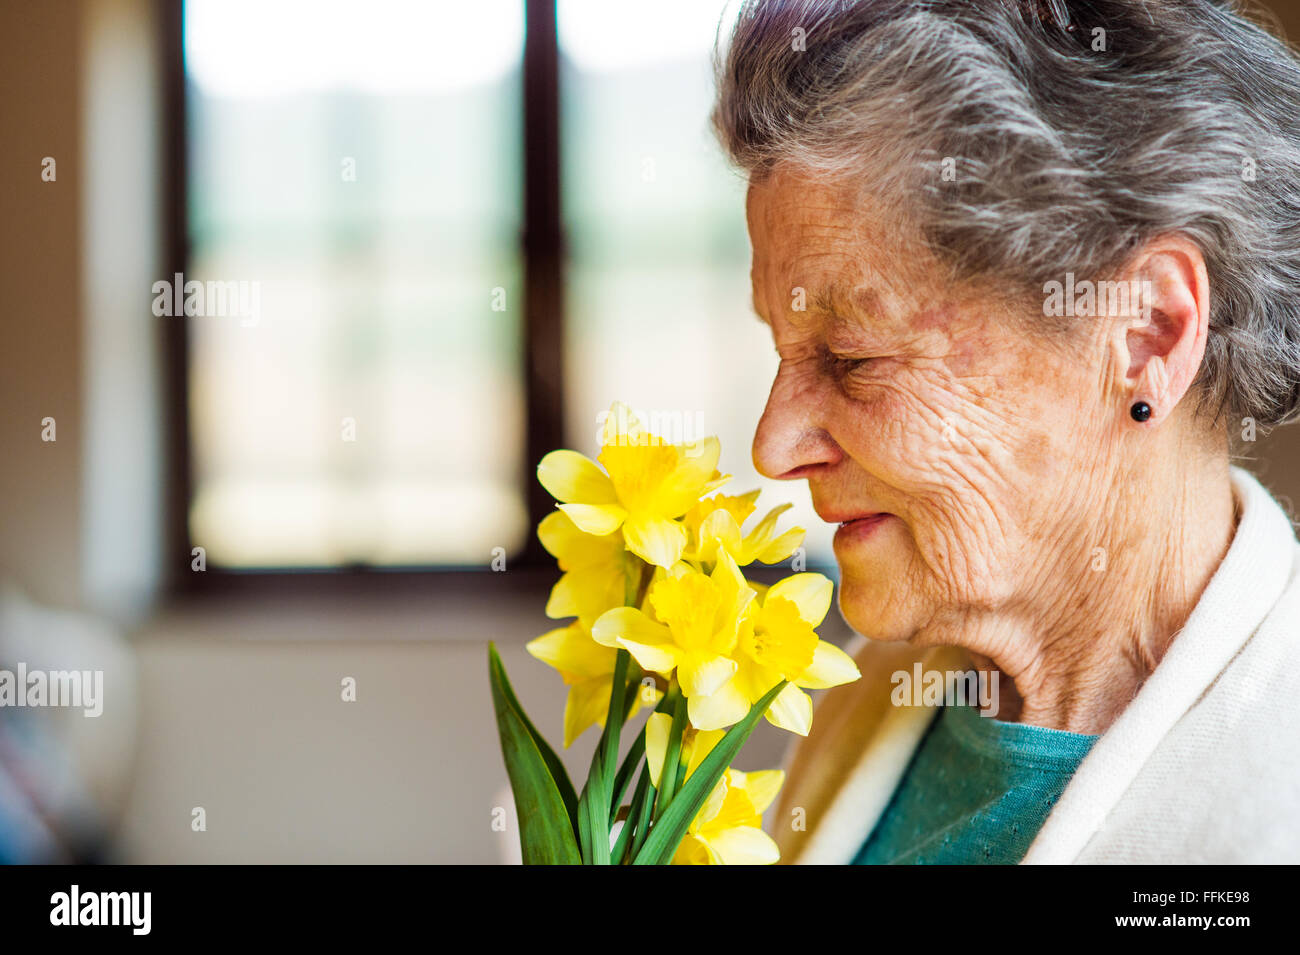 Senior woman by the window smelling bouquet of daffodils - Stock Image